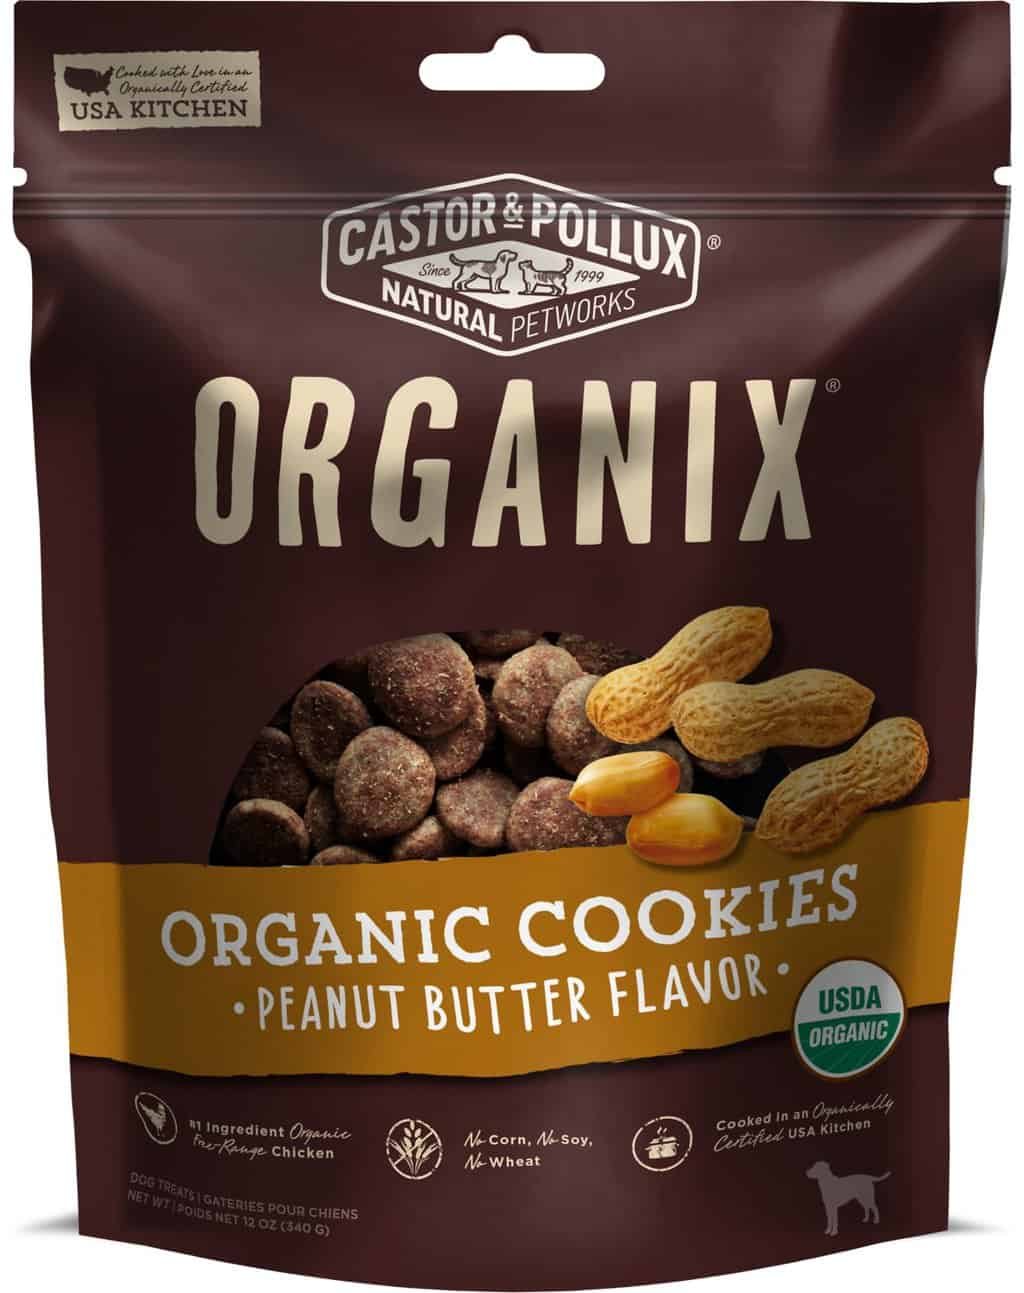 Castor and Pollux Dog Food: 2021 Review, Recalls & Coupons 15